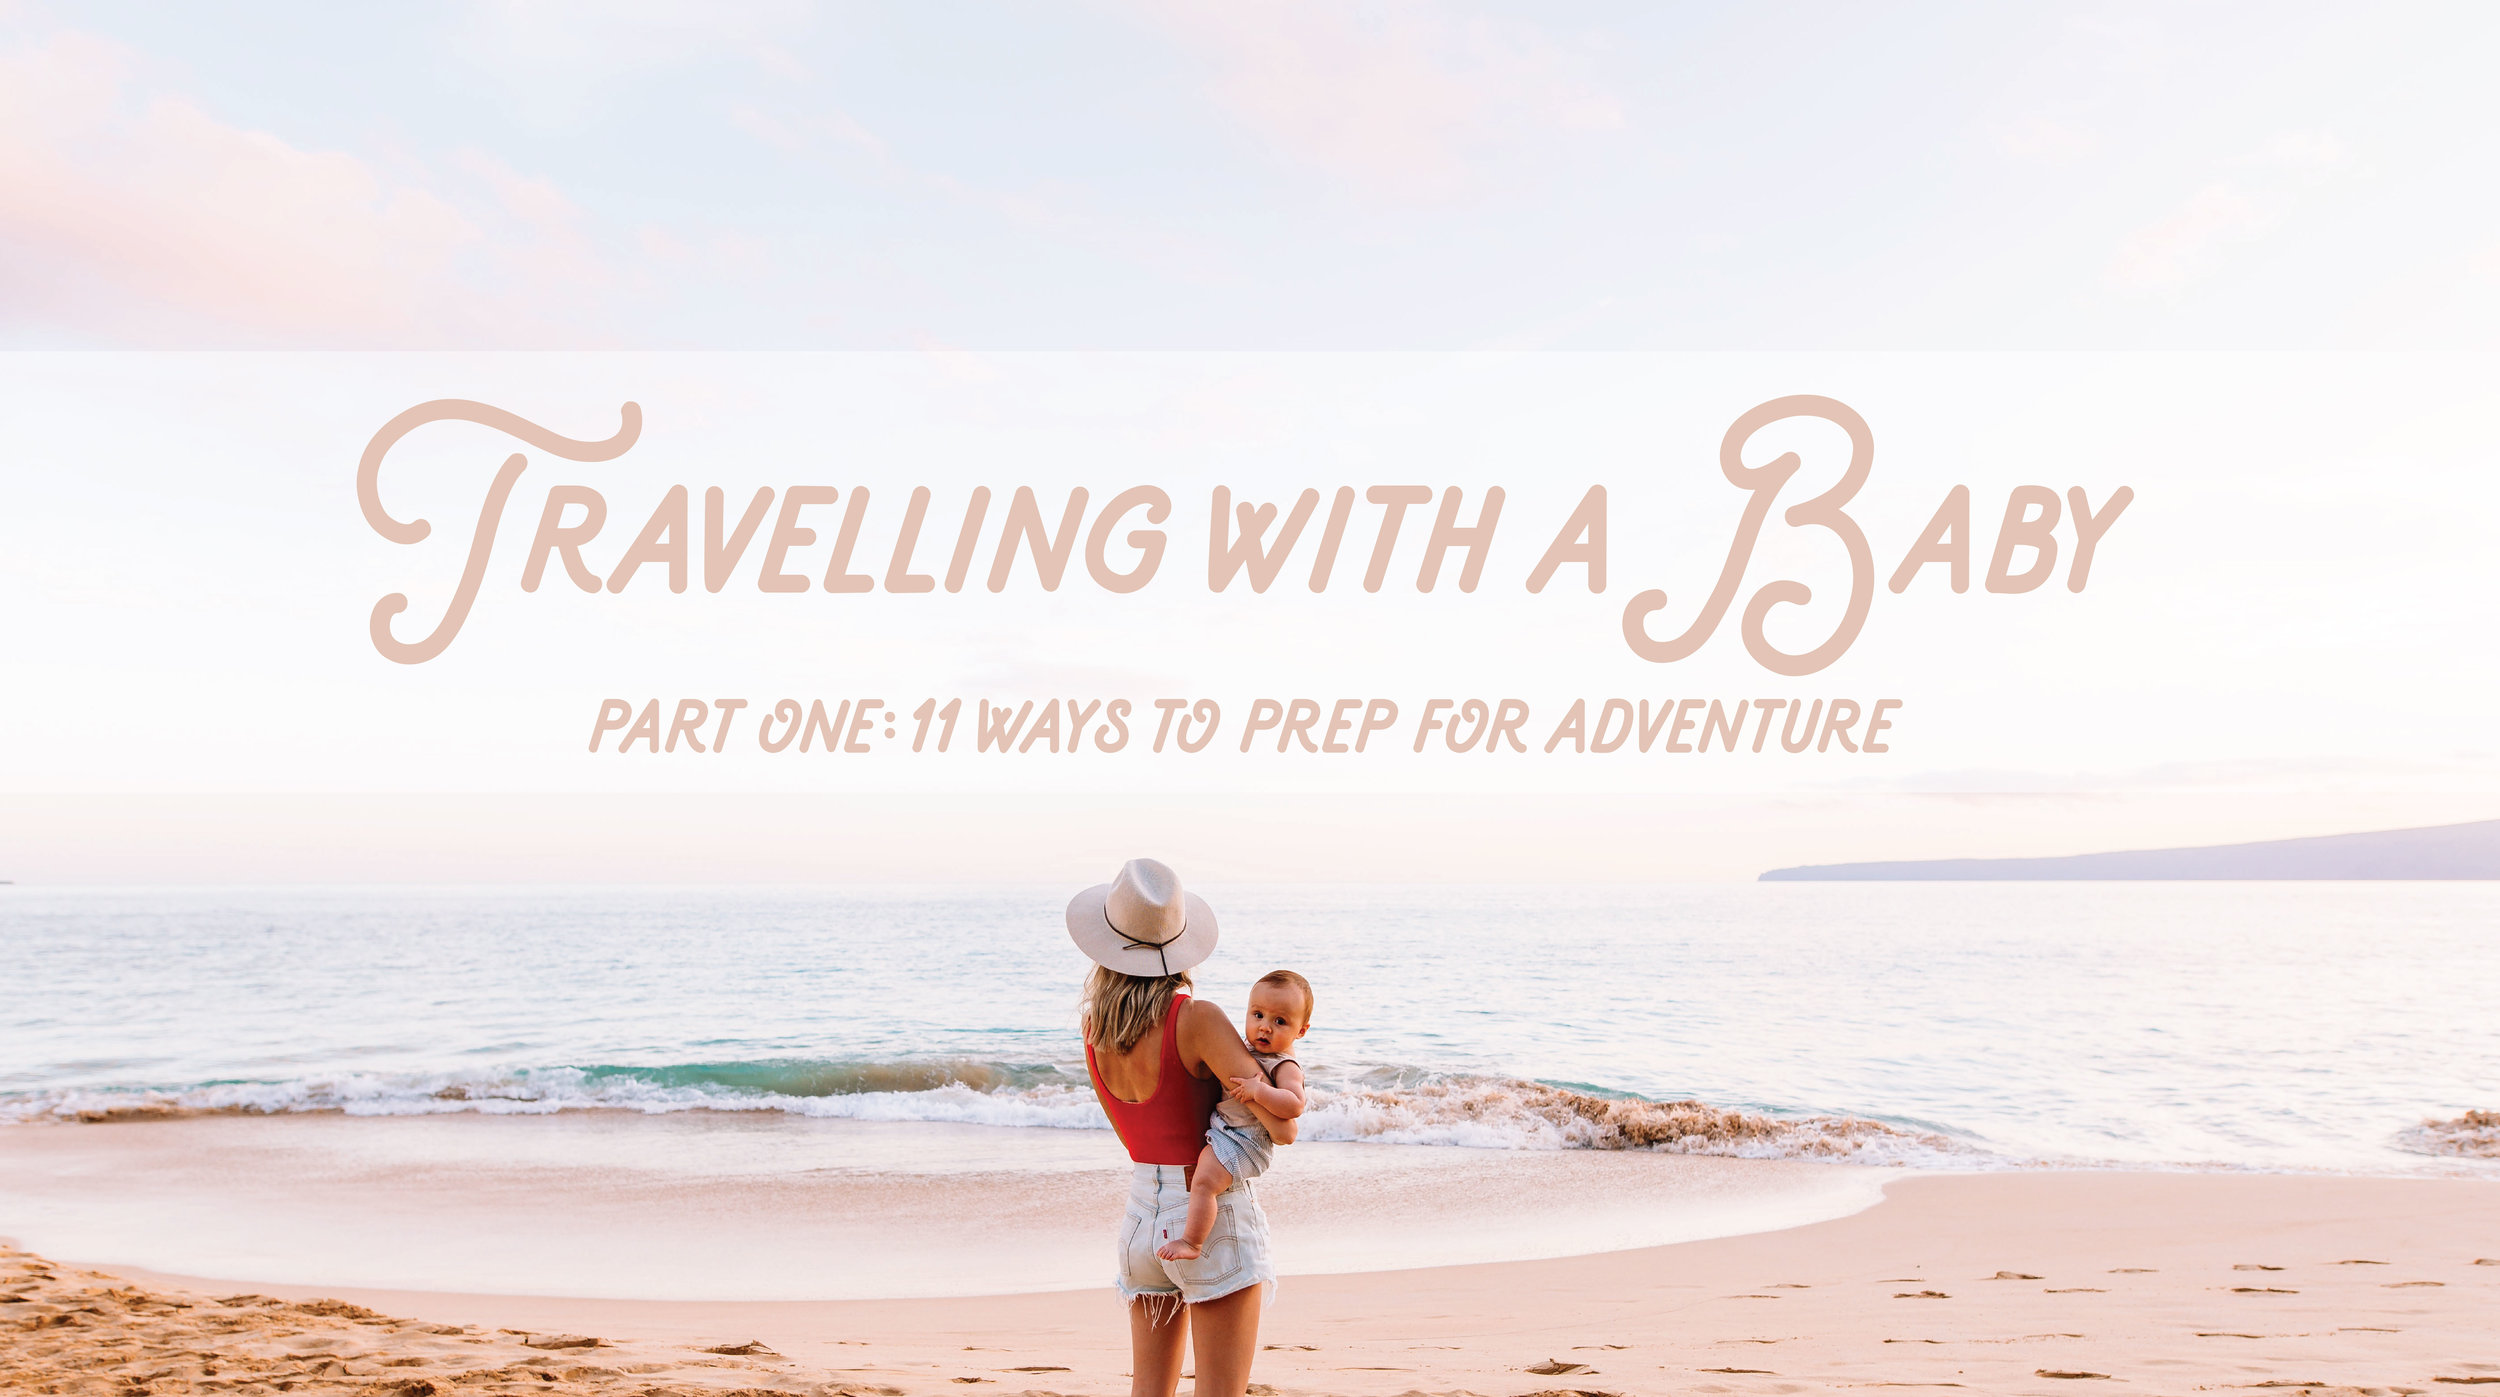 Travelling with a Baby. Part One: 11 Ways to Prep for Adventure